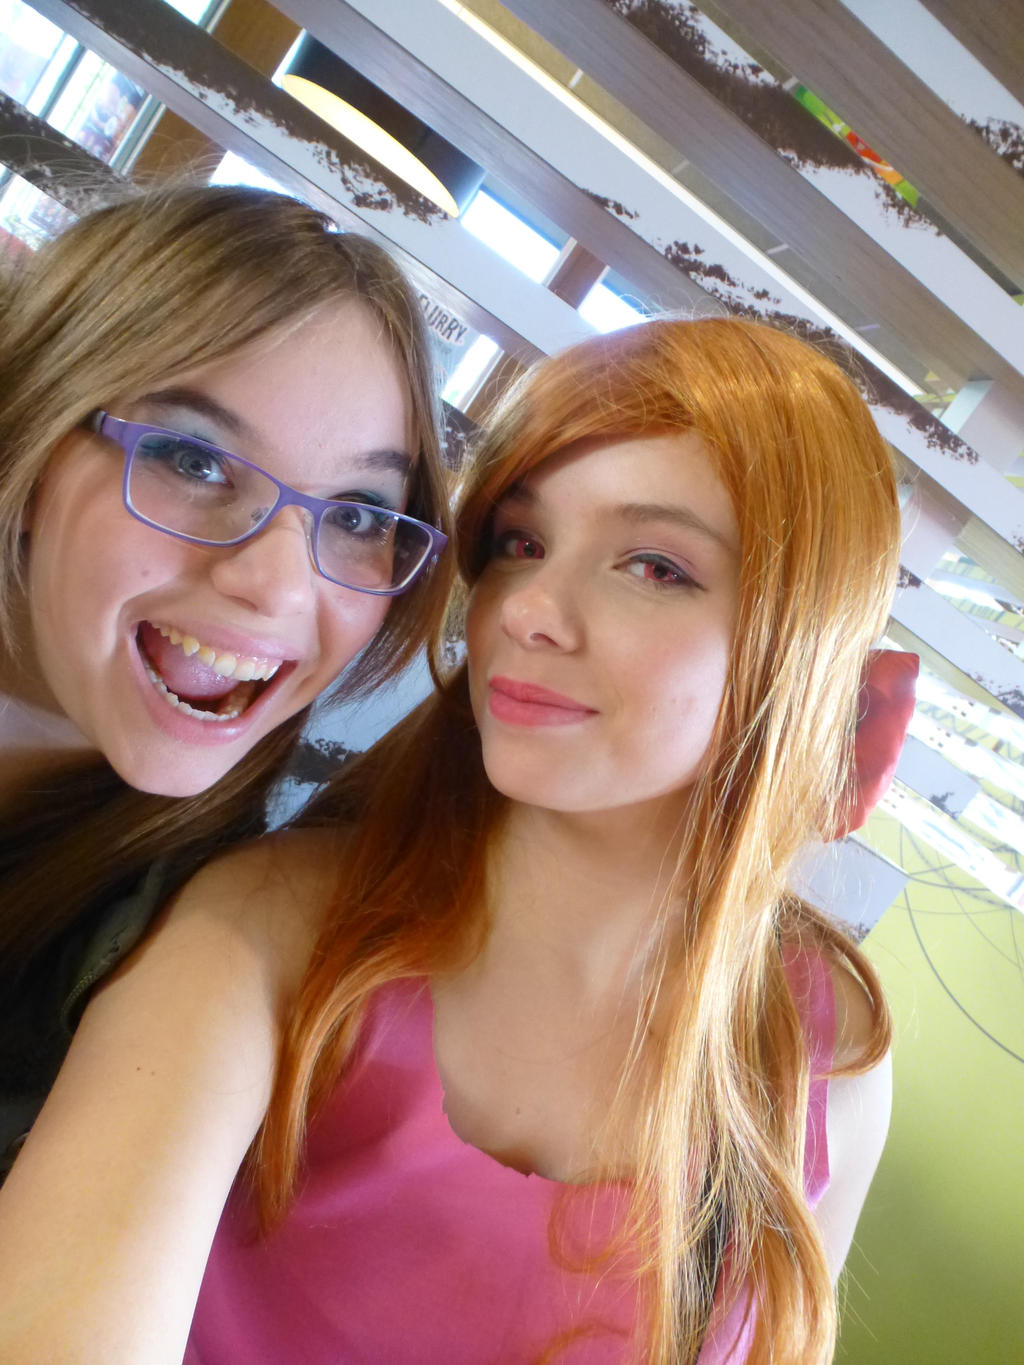 powerpuff girls cosplay lets take a selfie part 2 by aponevee on